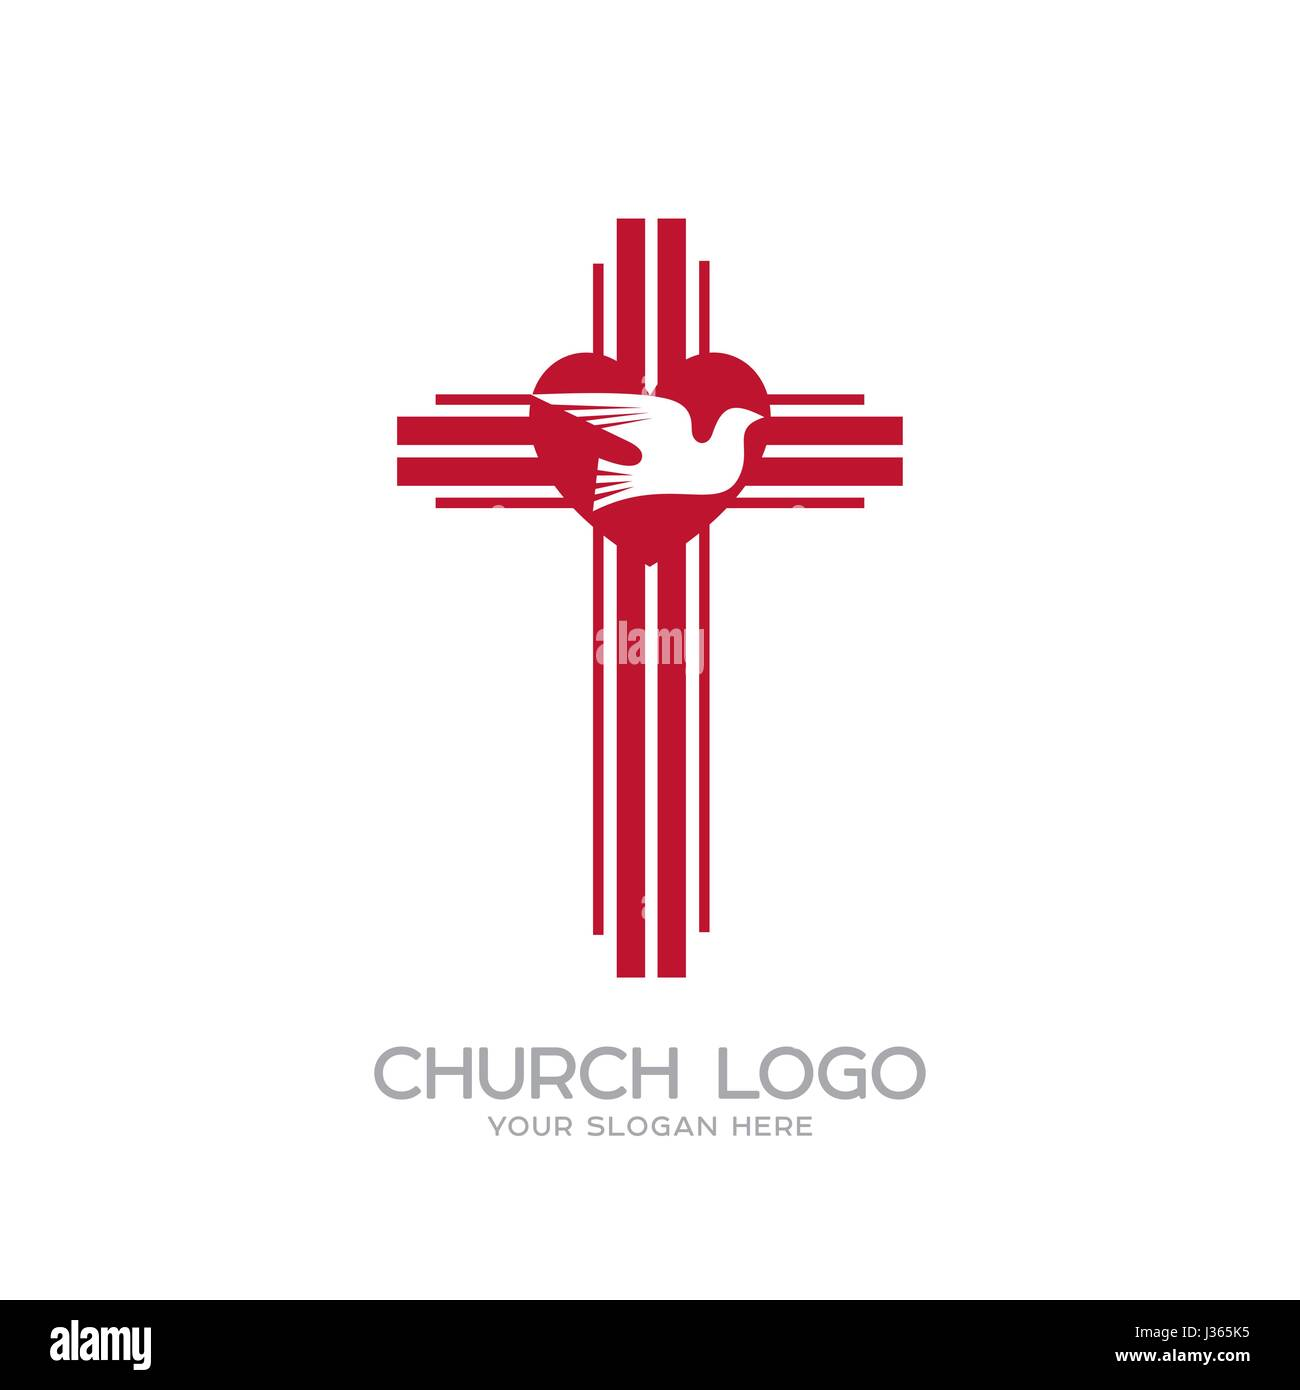 Church logo christian symbols the cross of the lord and savior christian symbols the cross of the lord and savior jesus christ the heart and the holy spirit is a dove biocorpaavc Image collections